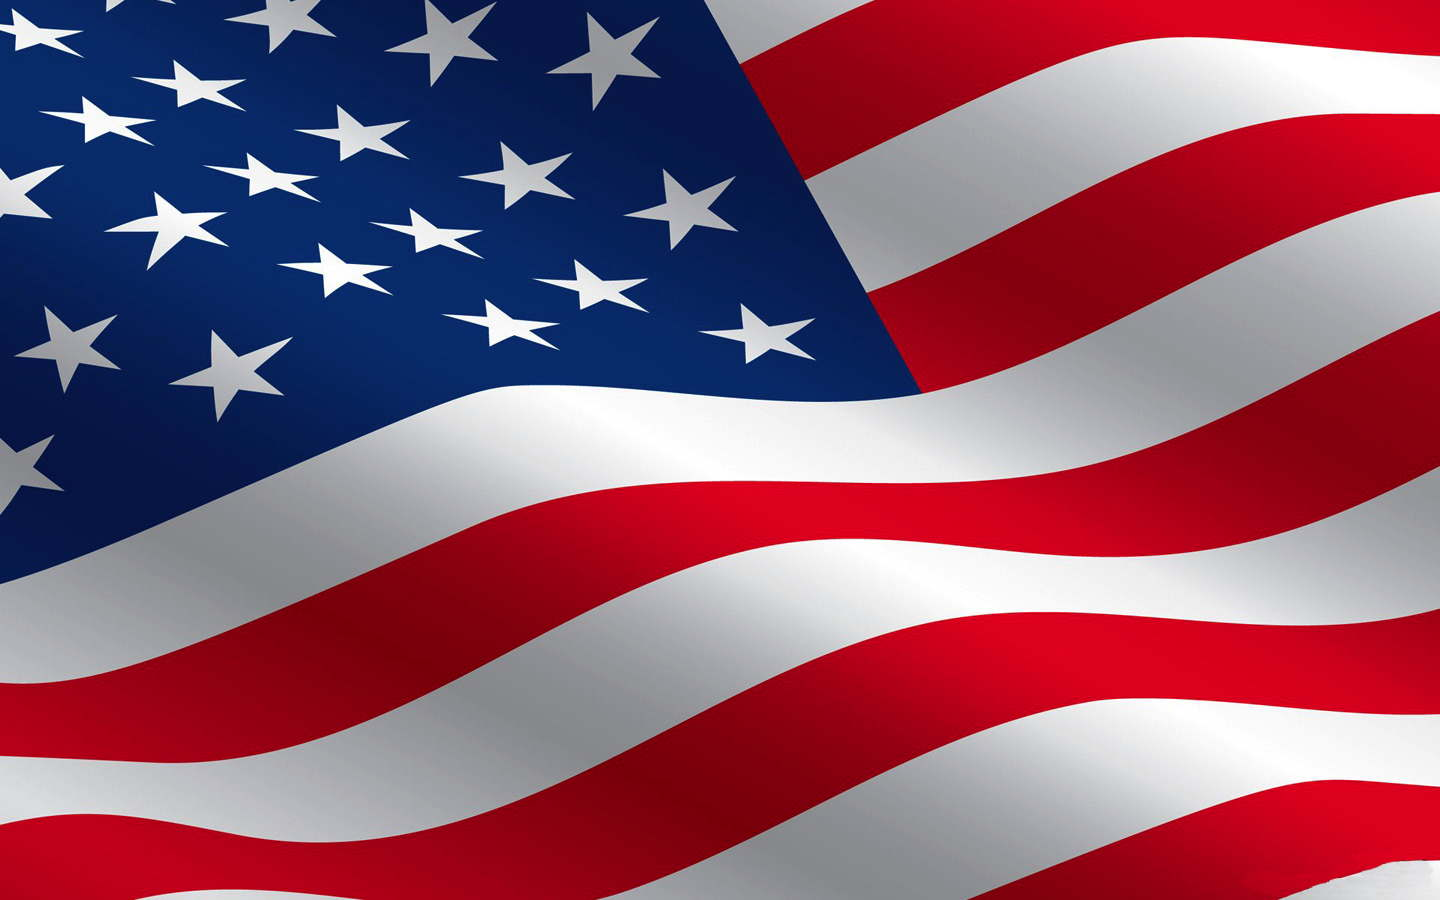 us-flag-9336-hd-wallpapers-in-travel-n-world-imagesci-com-d4cnvg-clipart